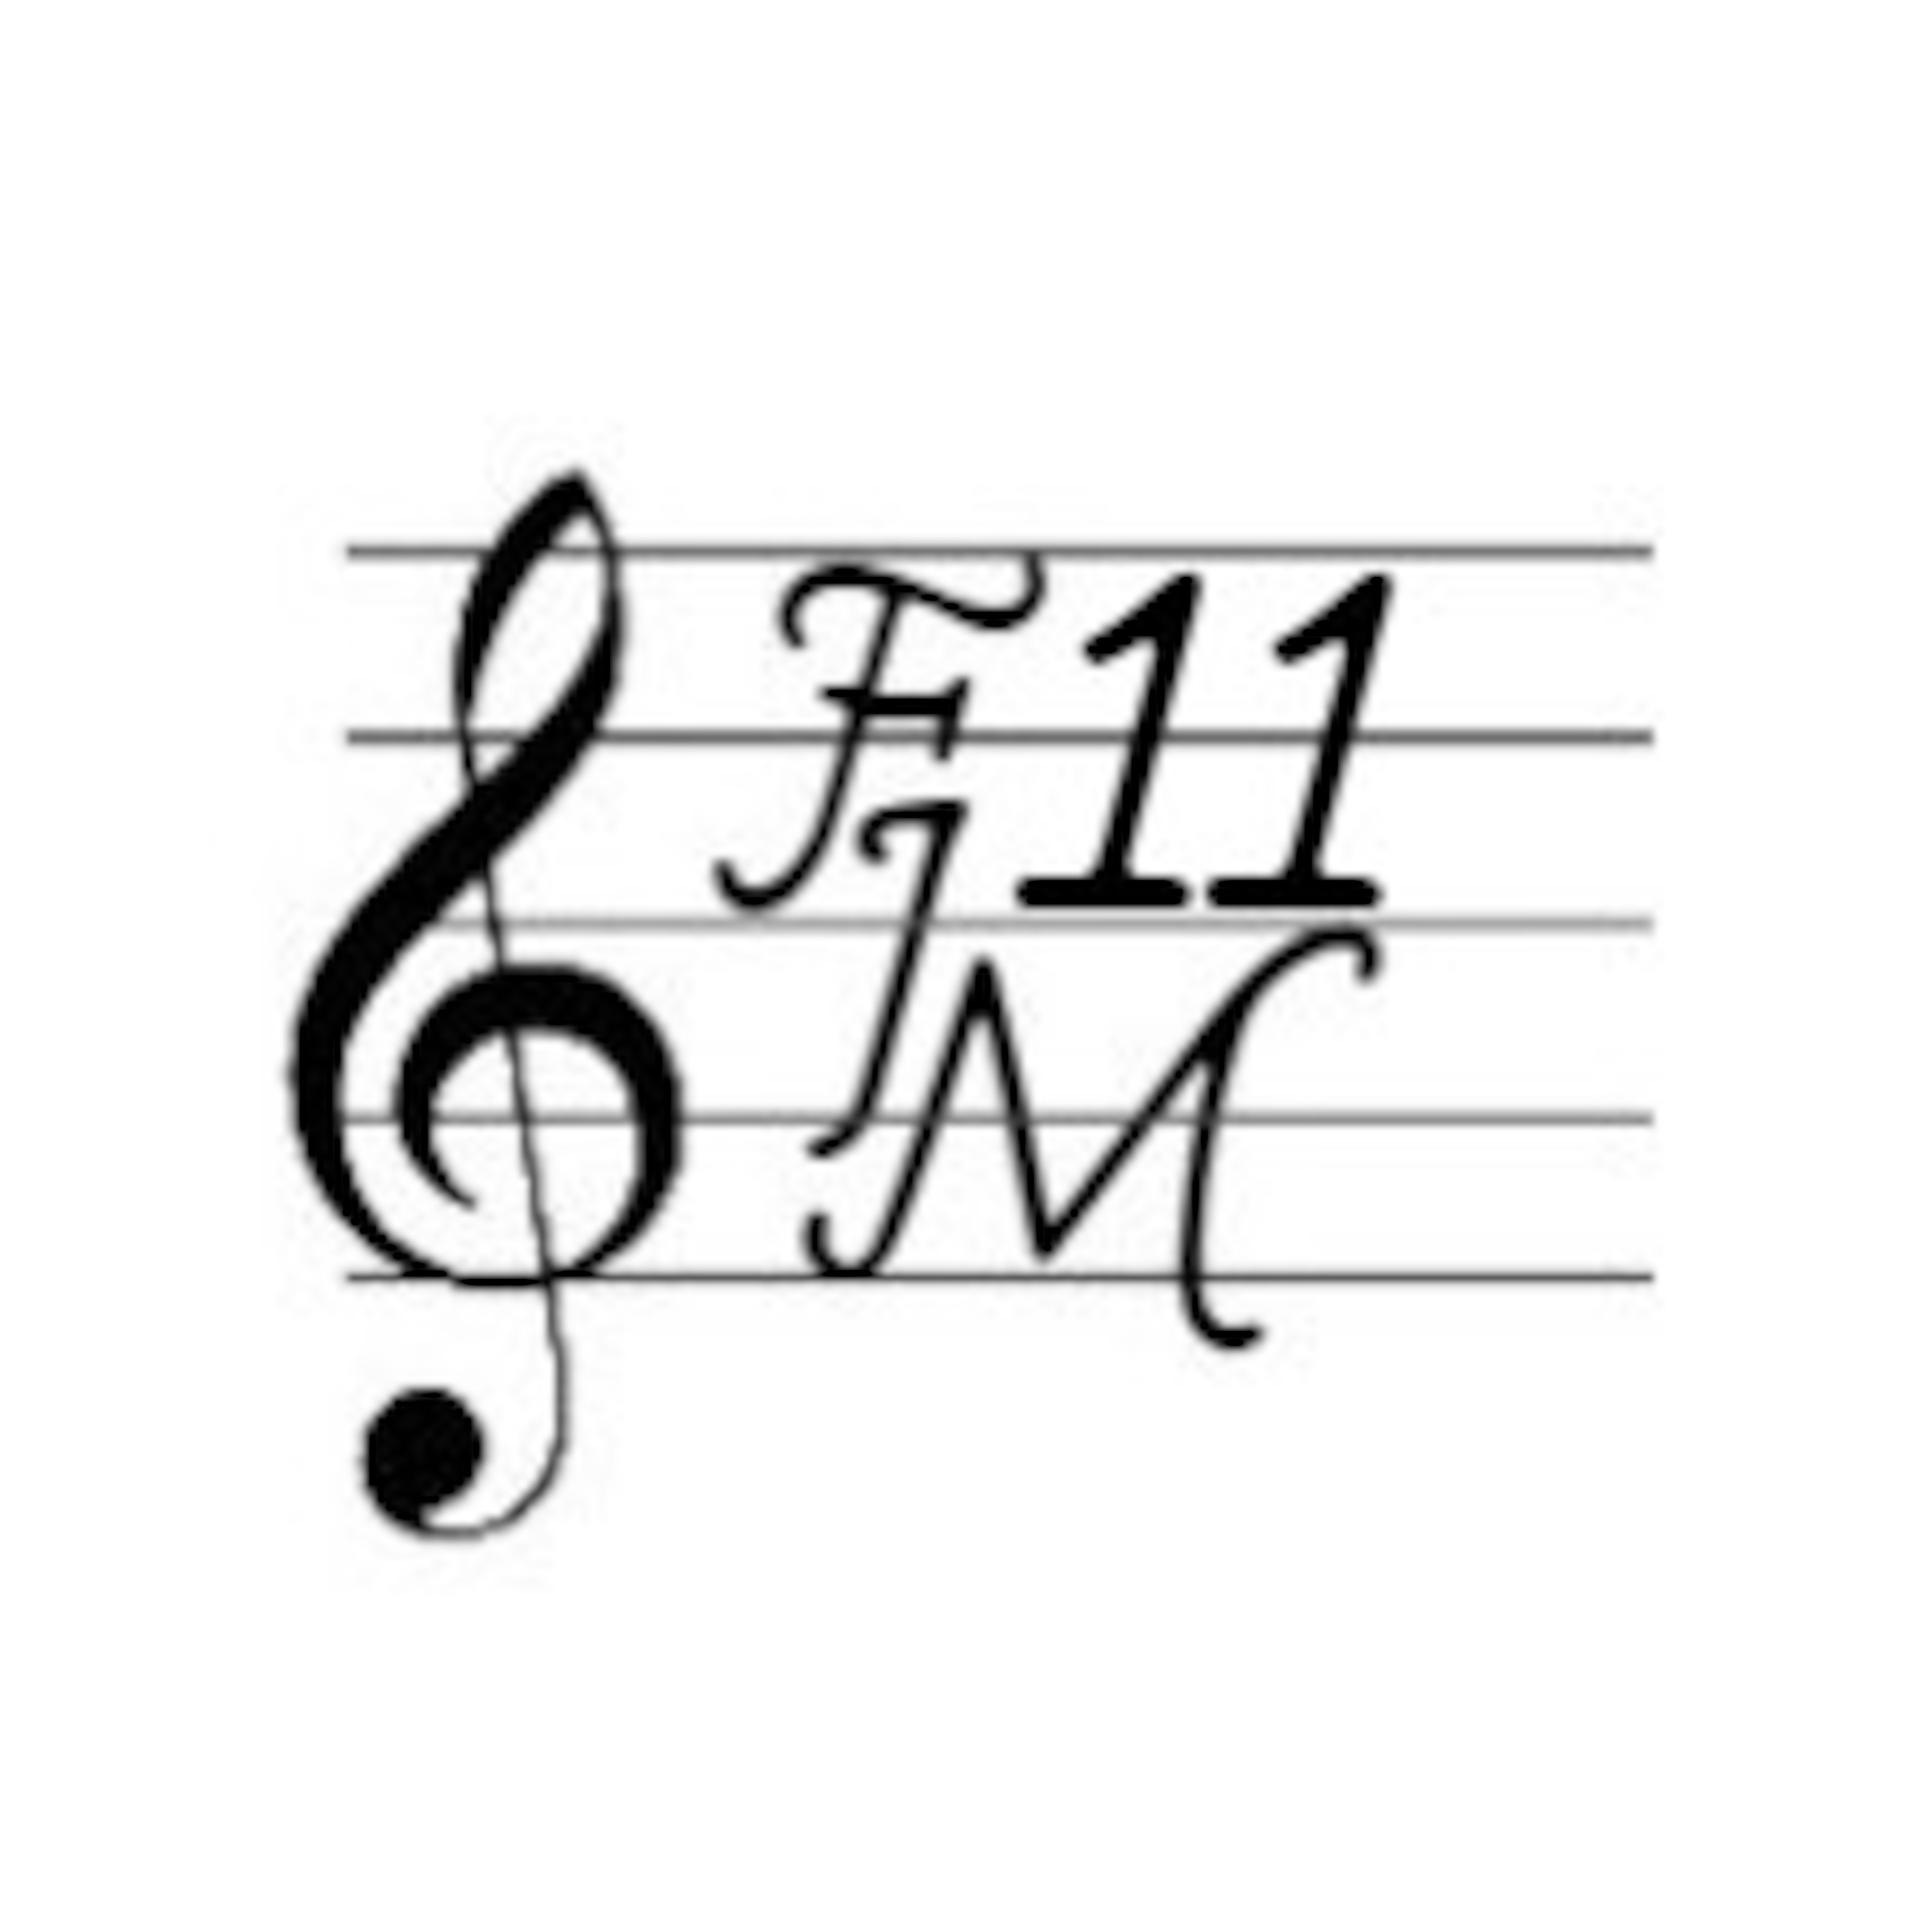 Freedom in Music XI - May I Serve Thee